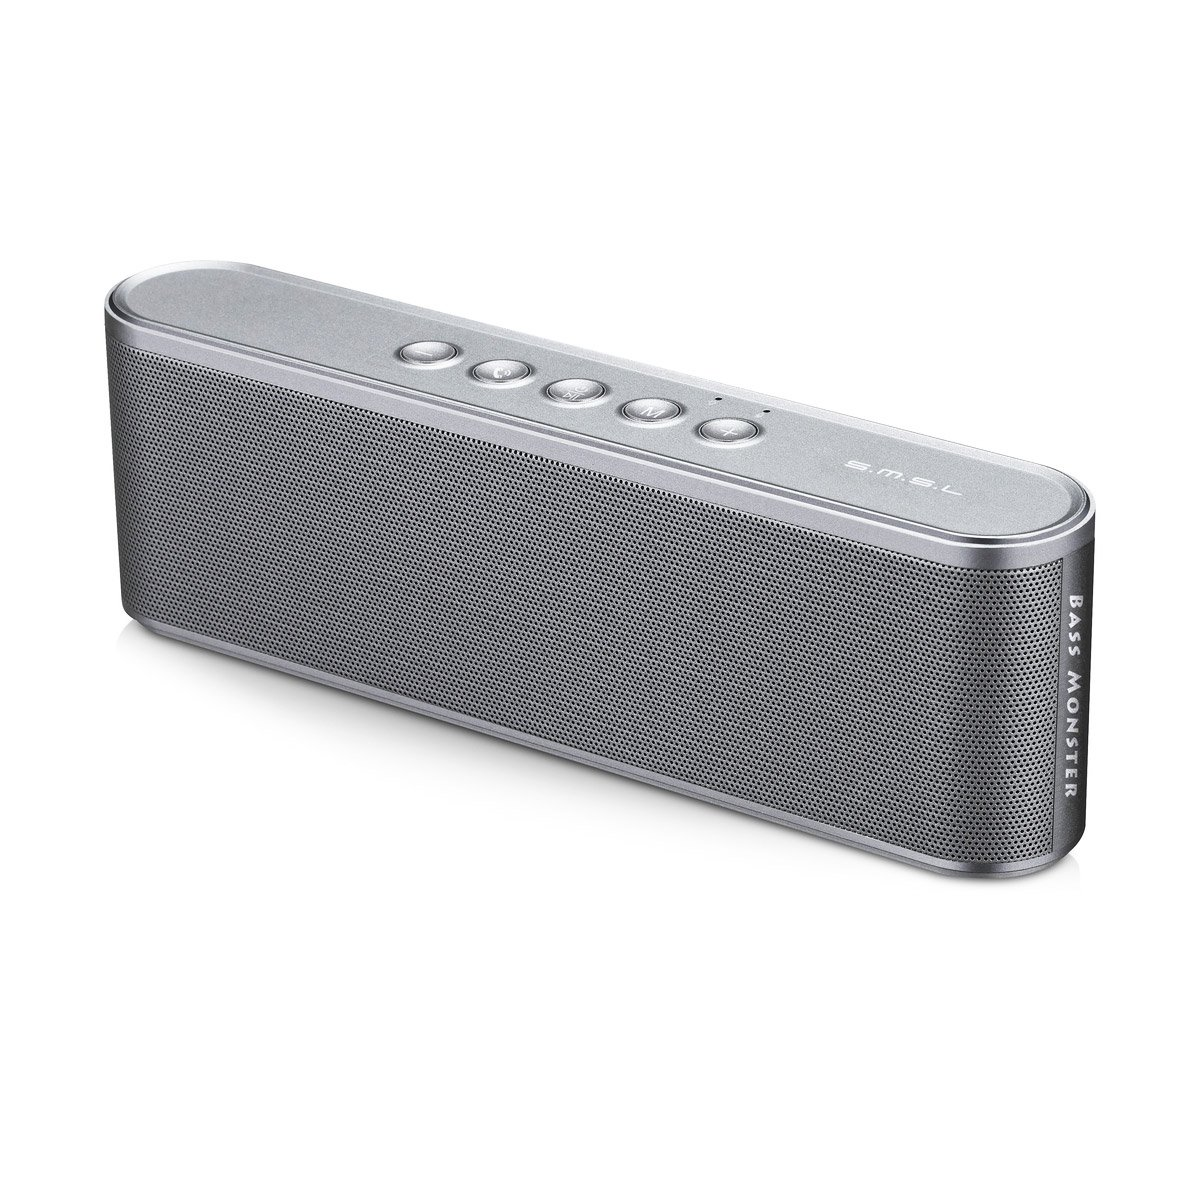 VMV SMSL A5 Portable Bluetooth Speakers Aluminum BT 4.2 Wireless Stereo Speaker with Loud Stereo Sound, Rich Bass, Hands-free Calling,FM Fuction,TF card & U Disk Direct Read Playback Bright Grey by VMV